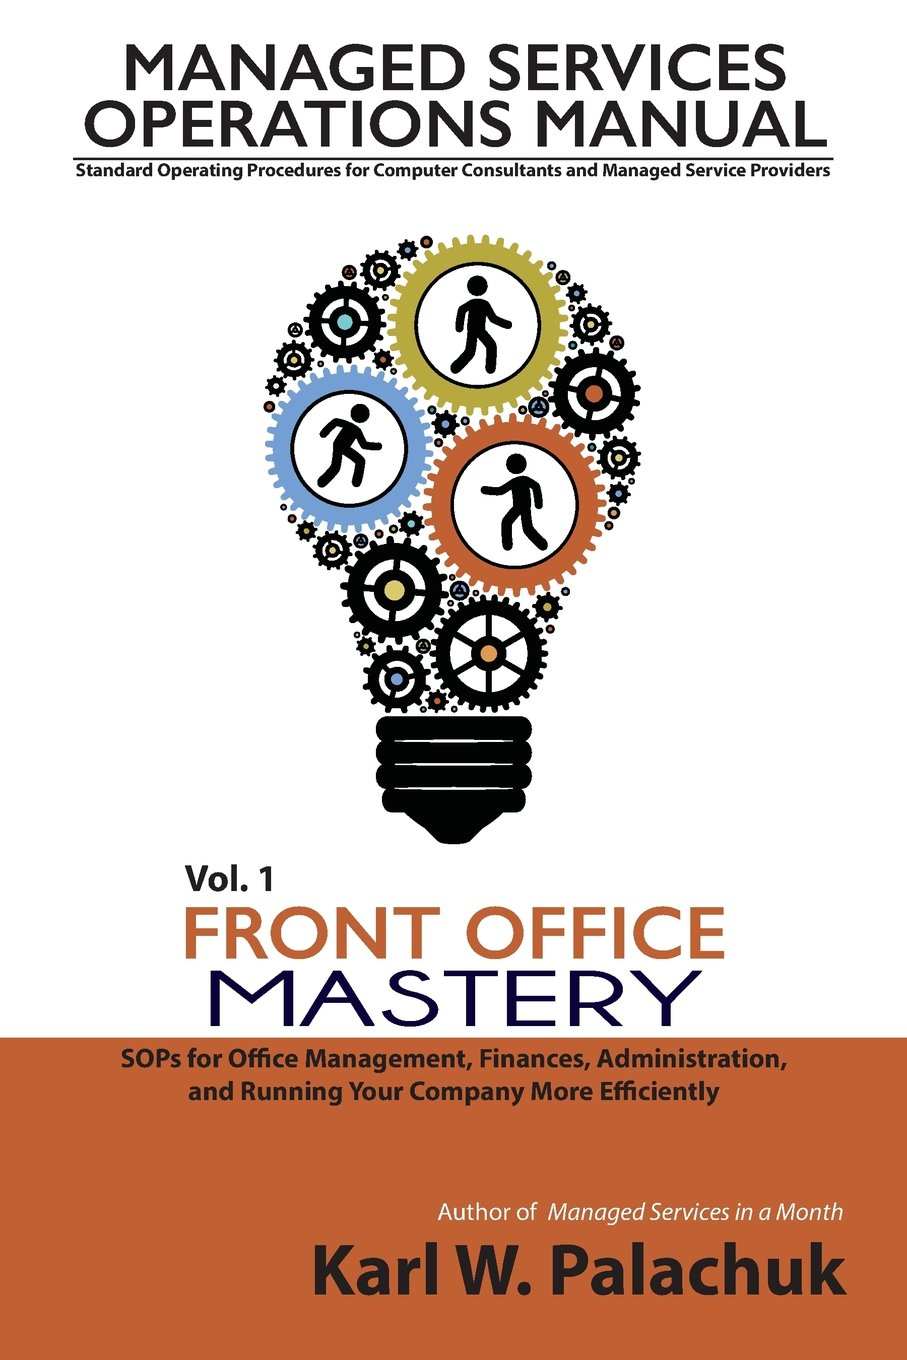 Download Vol. 1 - Front Office Mastery: Sops for Office Management, Finances, Administration, and Running Your Company More Efficiently pdf